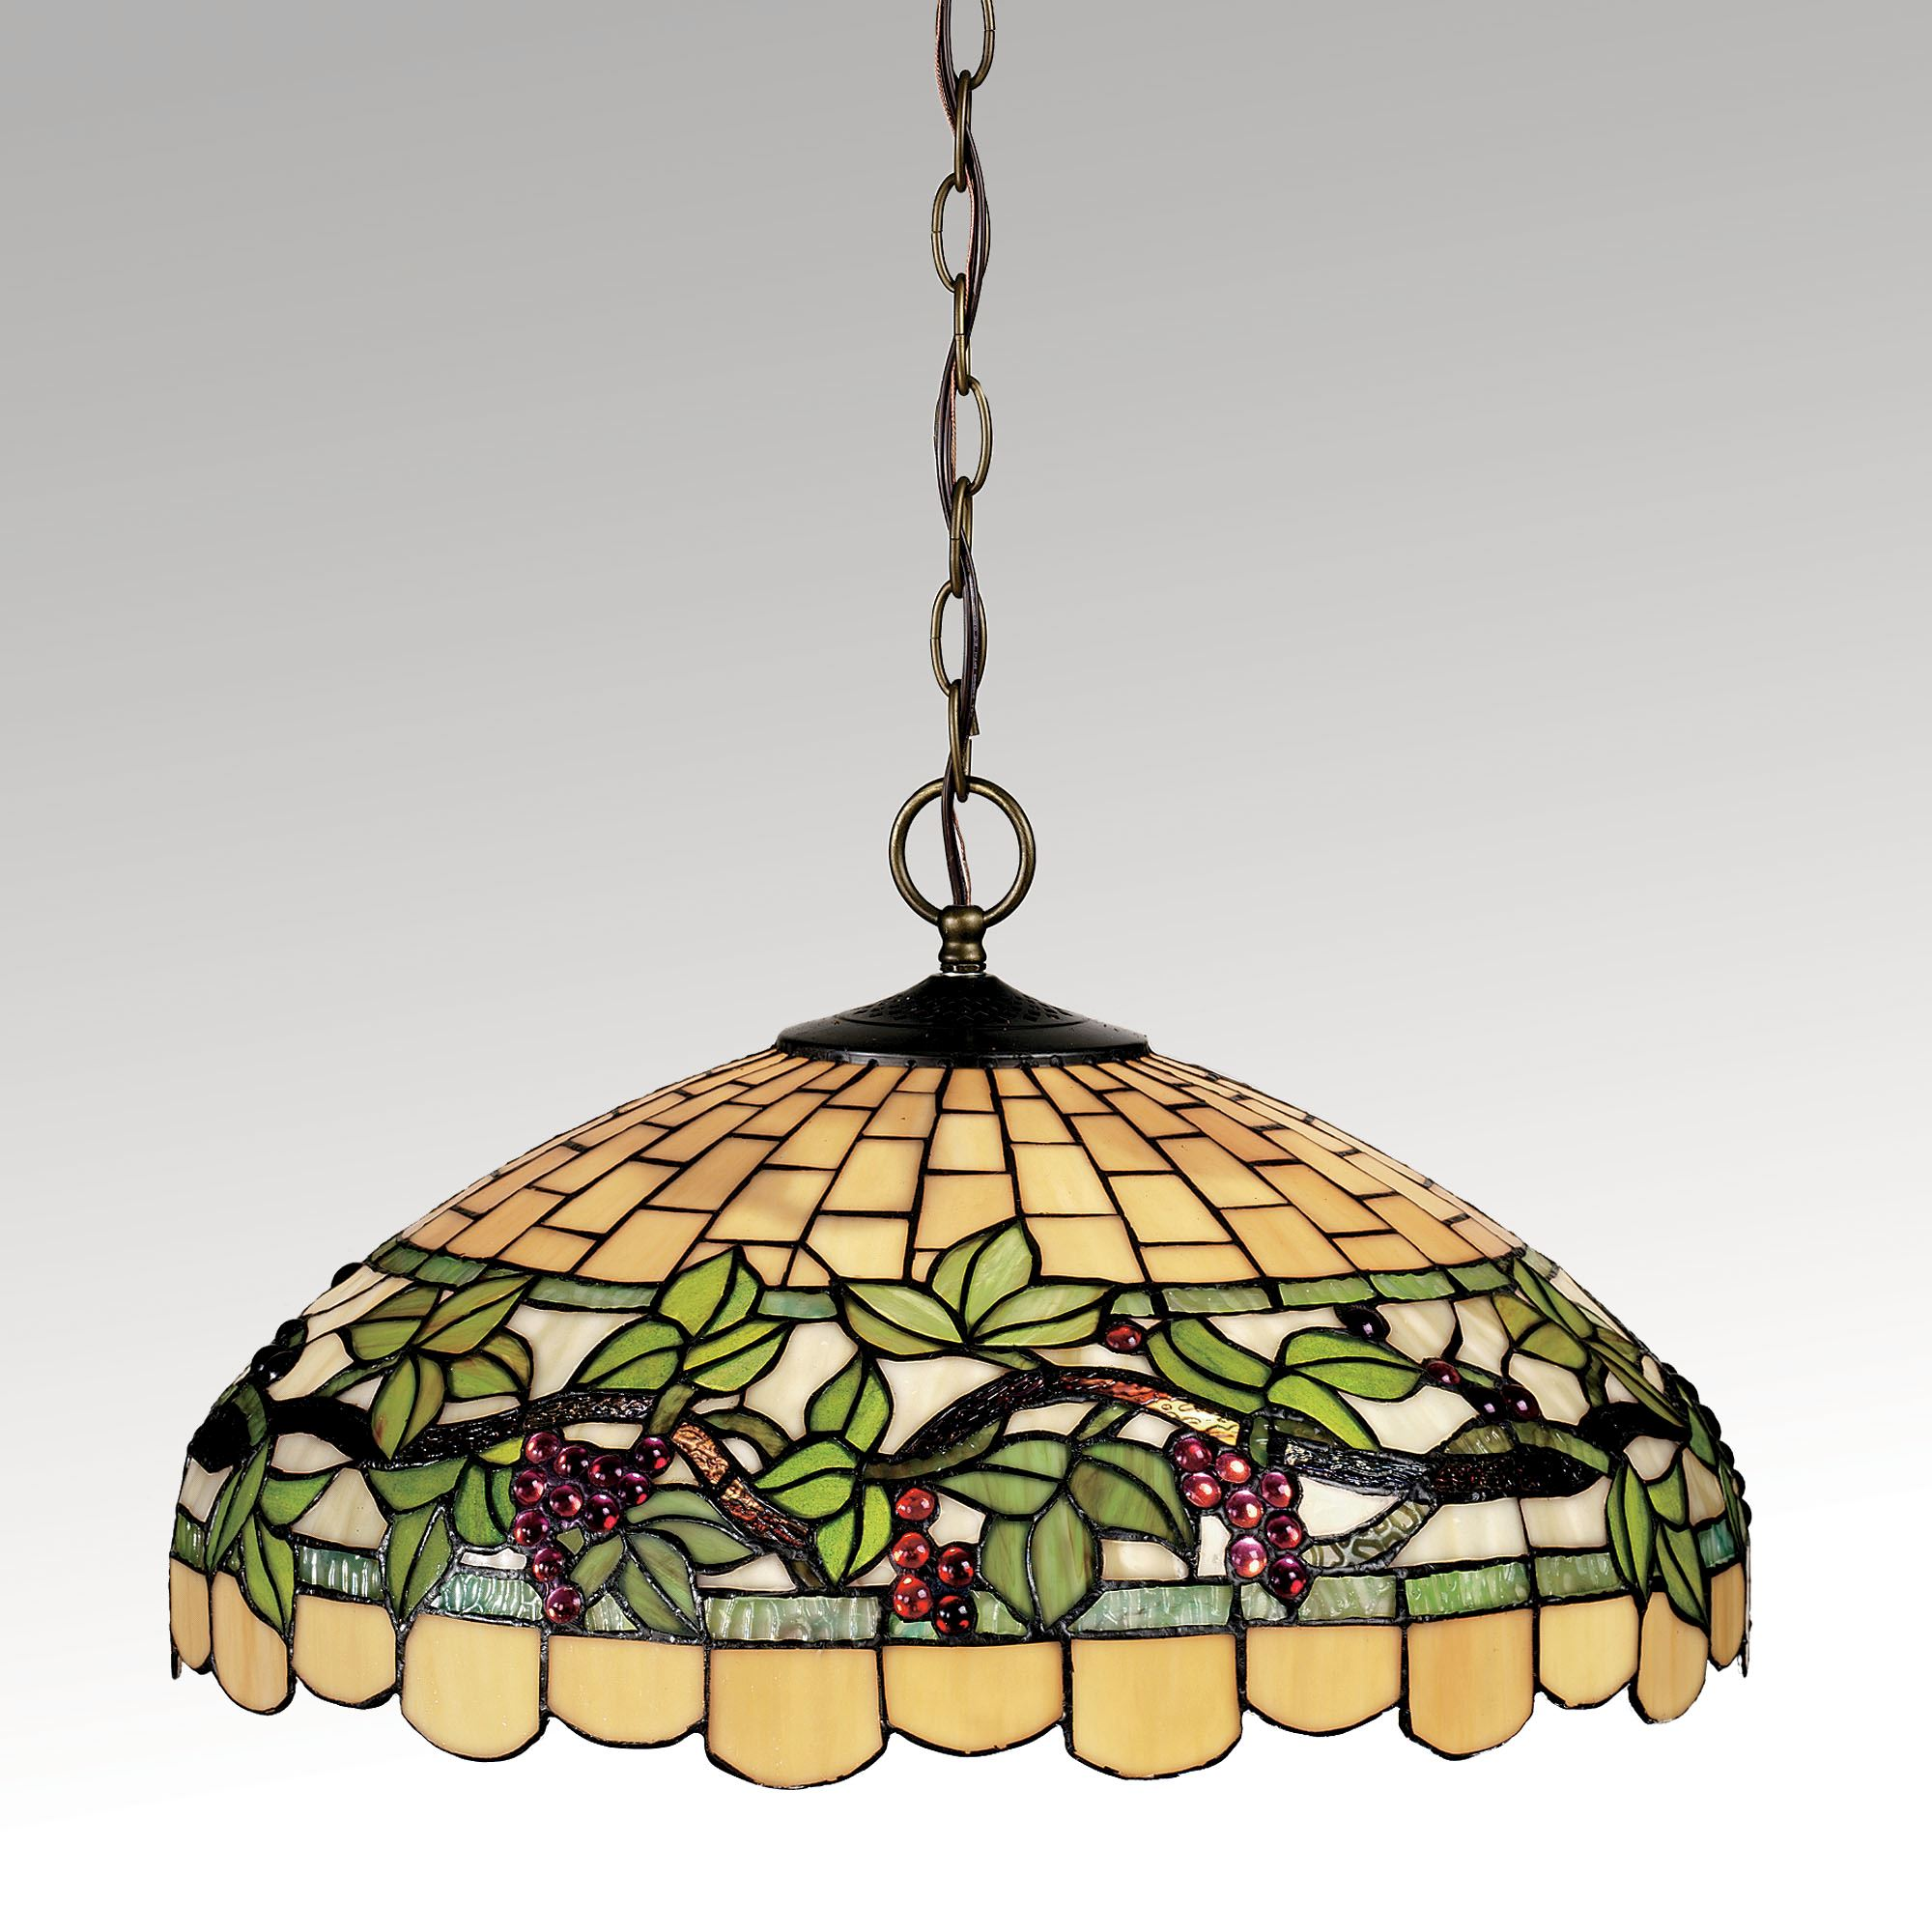 Hanging Lamp Grapevine Breeze Stained Glass Hanging Lamp